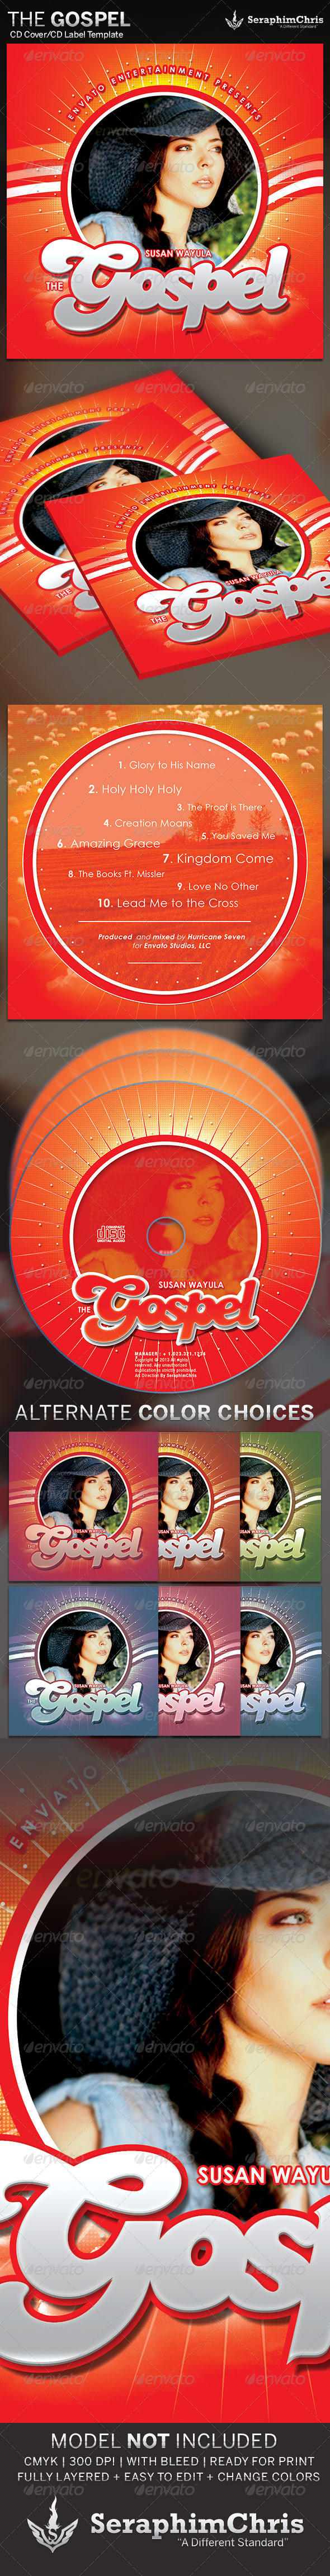 The Gospel: CD Cover Artwork Template - CD & DVD artwork Print Templates